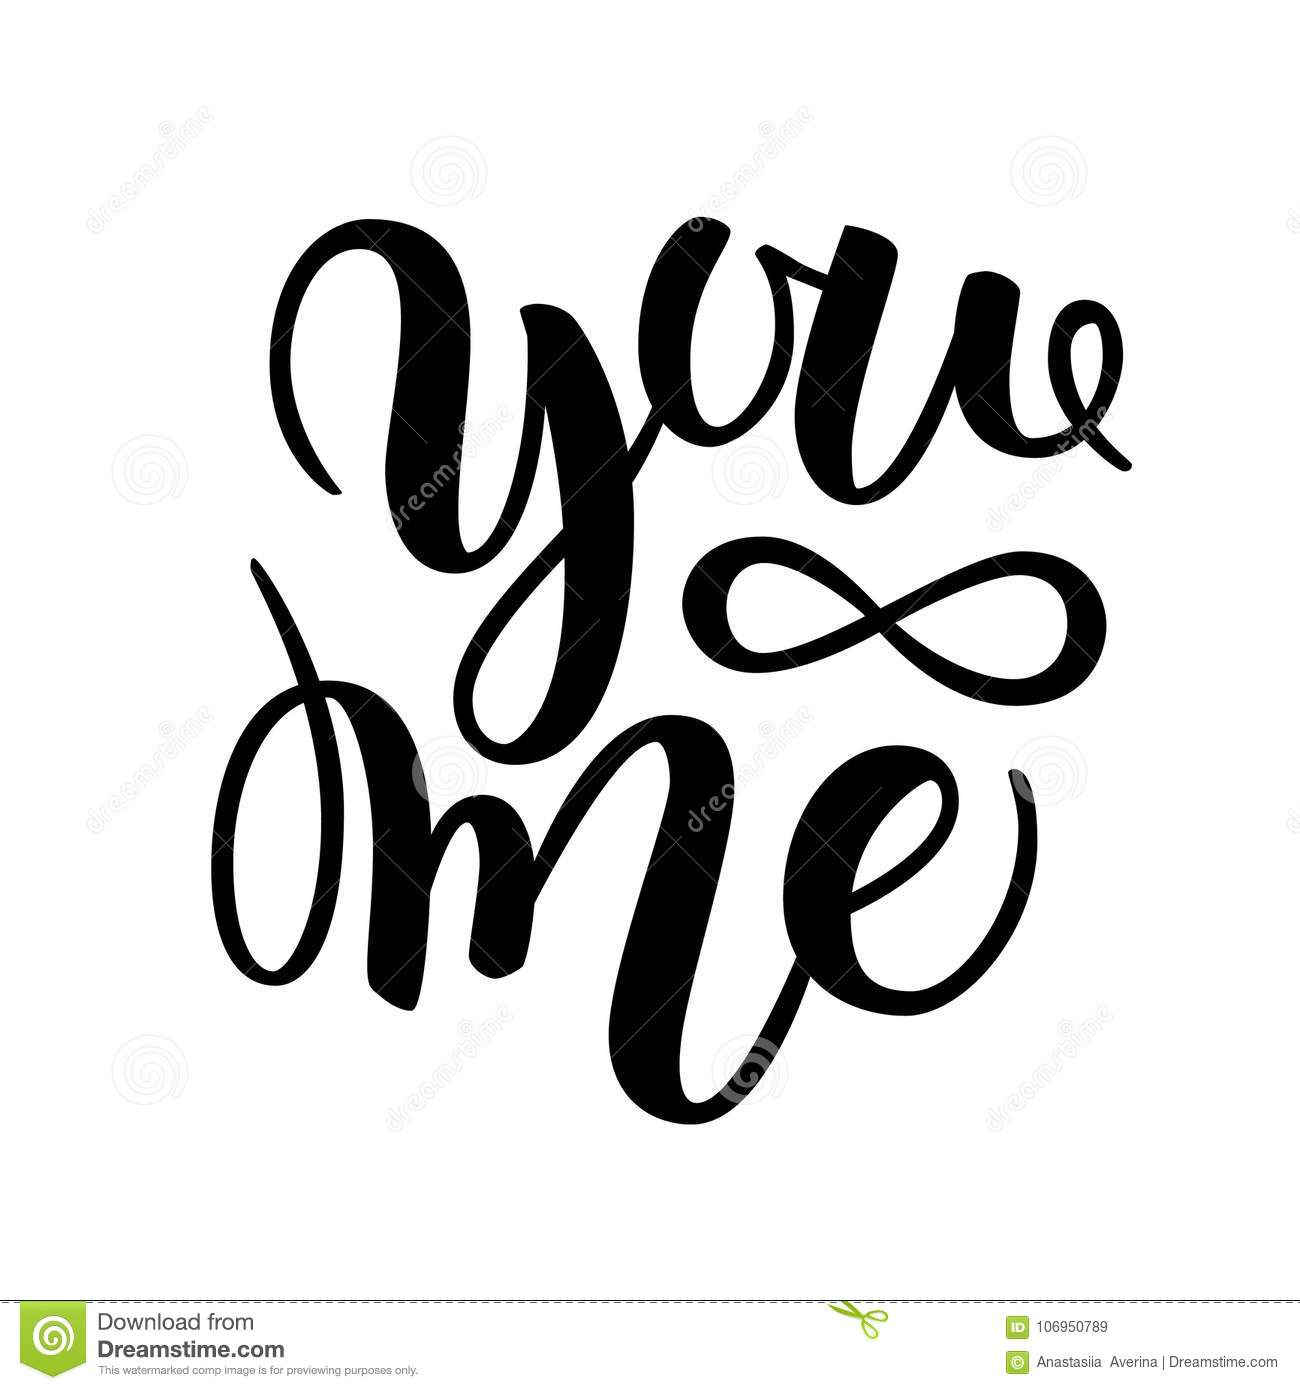 You And Me Modern Calligraphy Lettering Design For Typography Poster Or T Shirt Motivational Saying Wall Decoration Vector